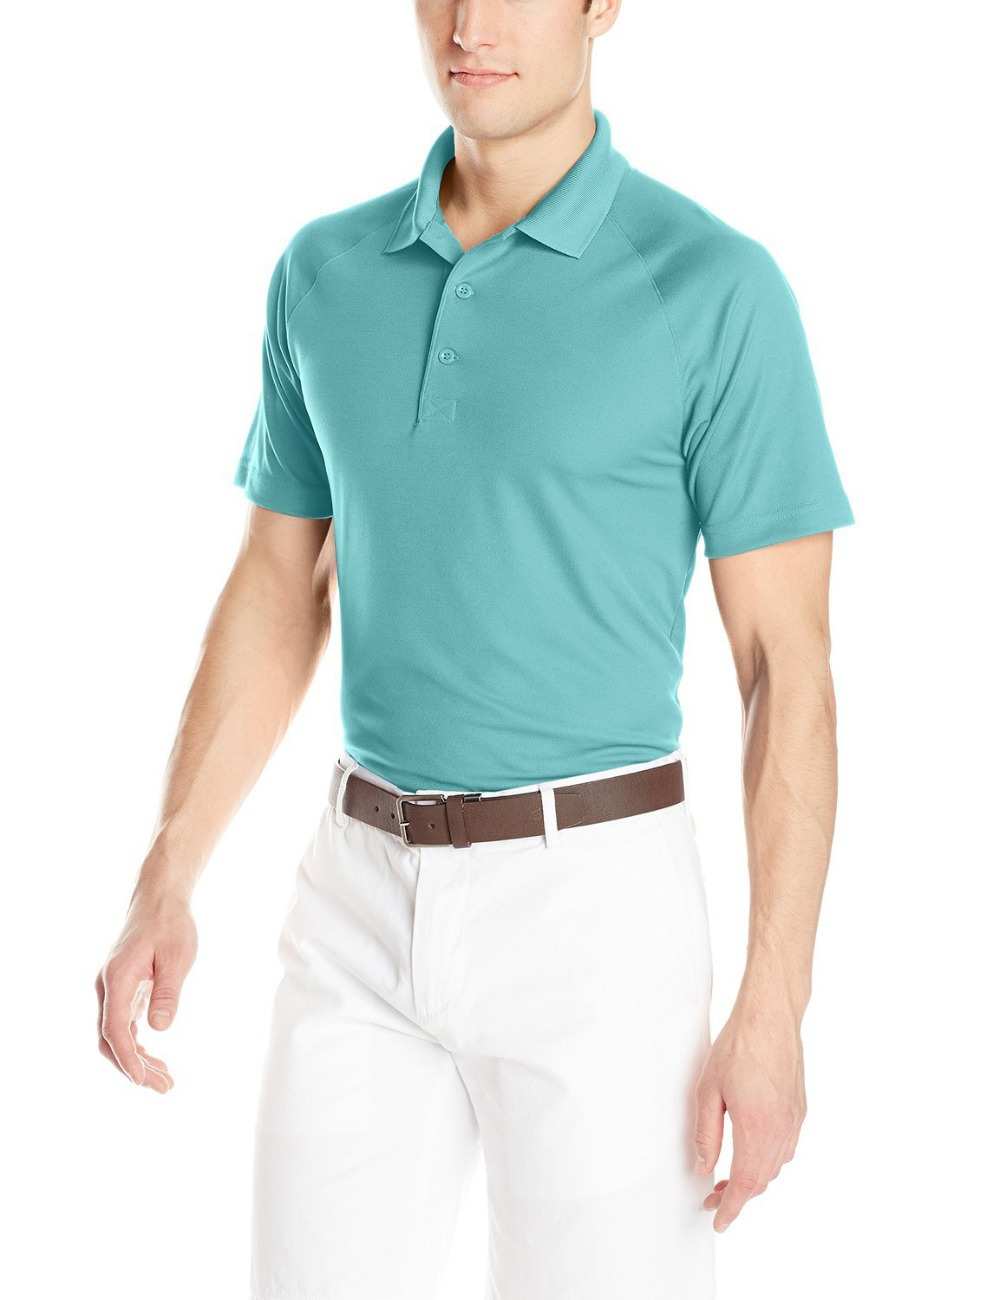 2015 new summer men collar polo shirt men clothing solid for Business casual polo shirt